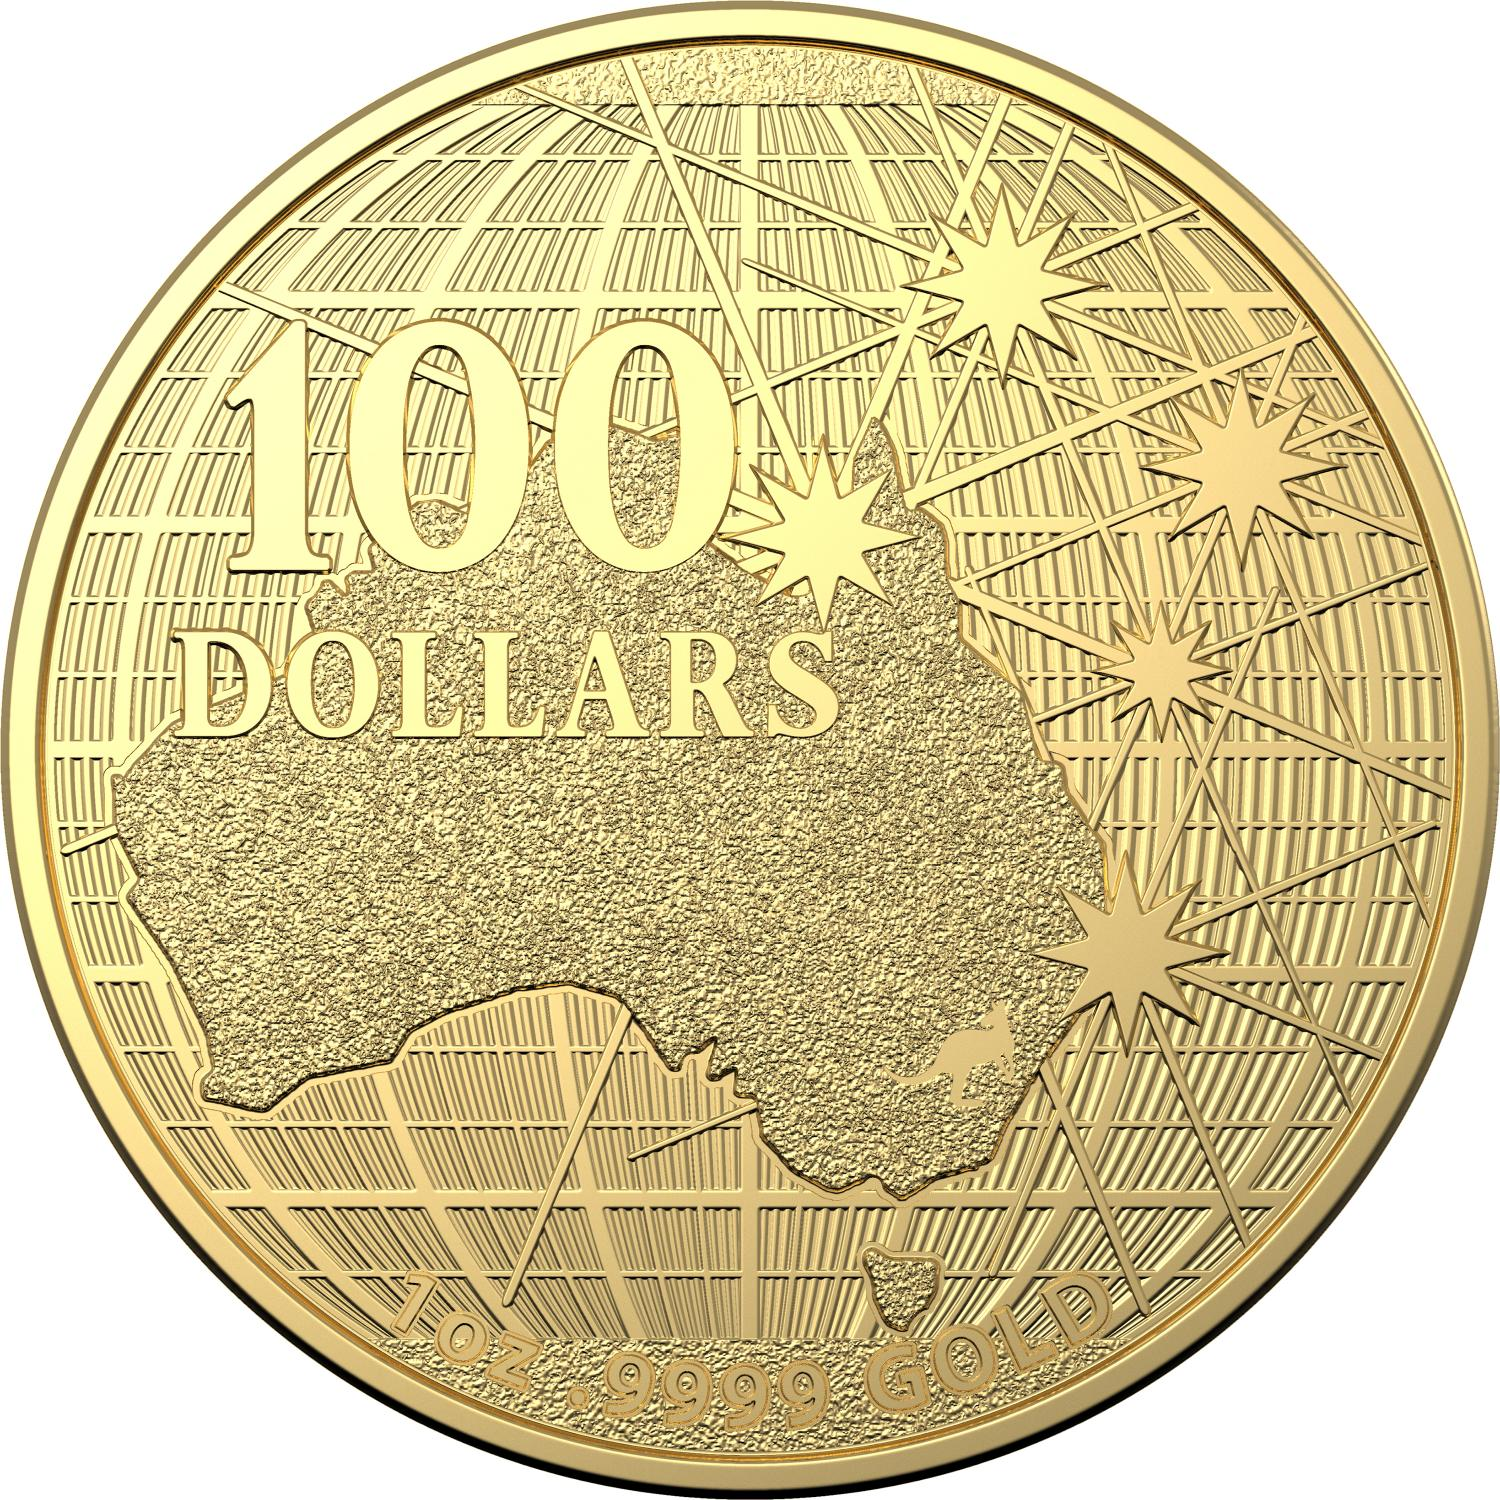 Thumbnail for 2020 $1 Beneath The Southern Skies Gold 99.9%Au 1oz Brilliant UNC Coin in Capsule